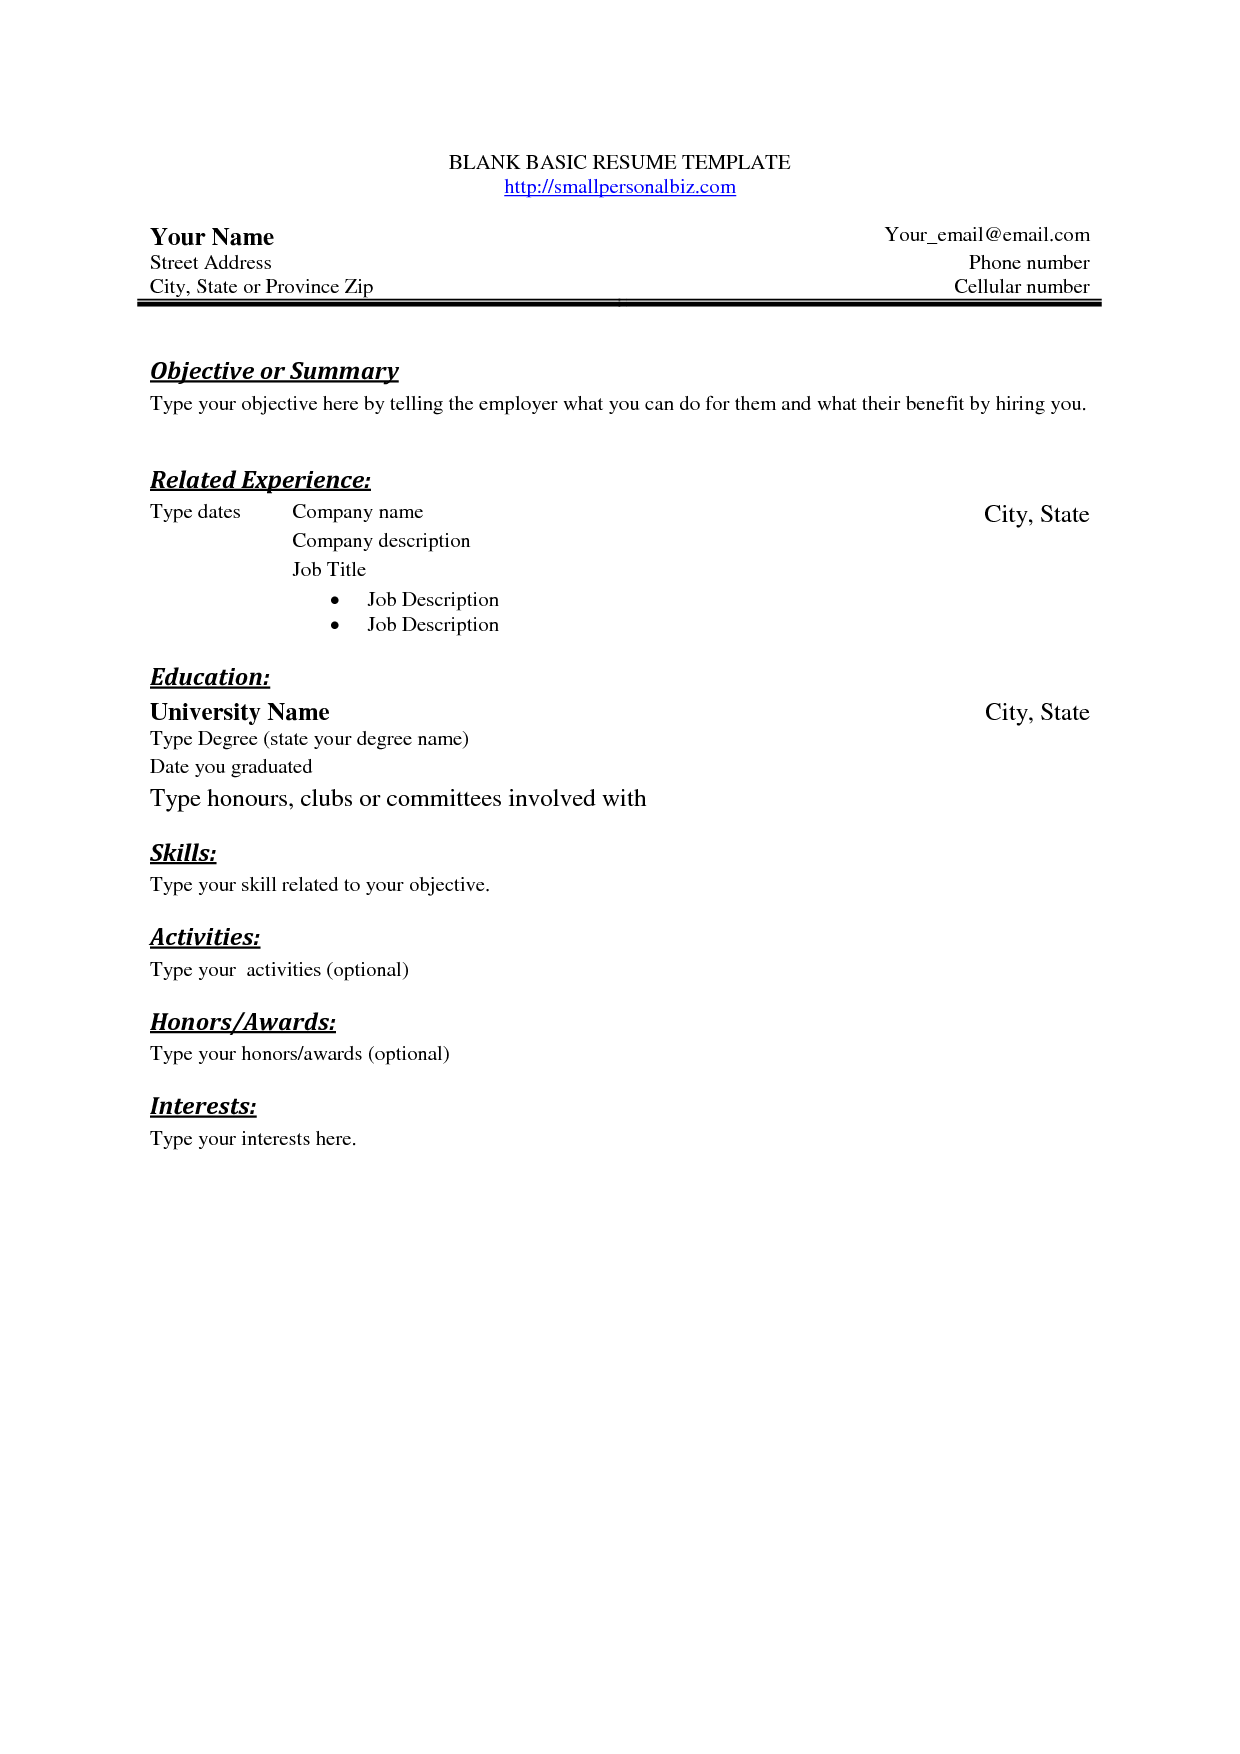 free basic blank resume template free basic sample resume - Sample Resume Builder